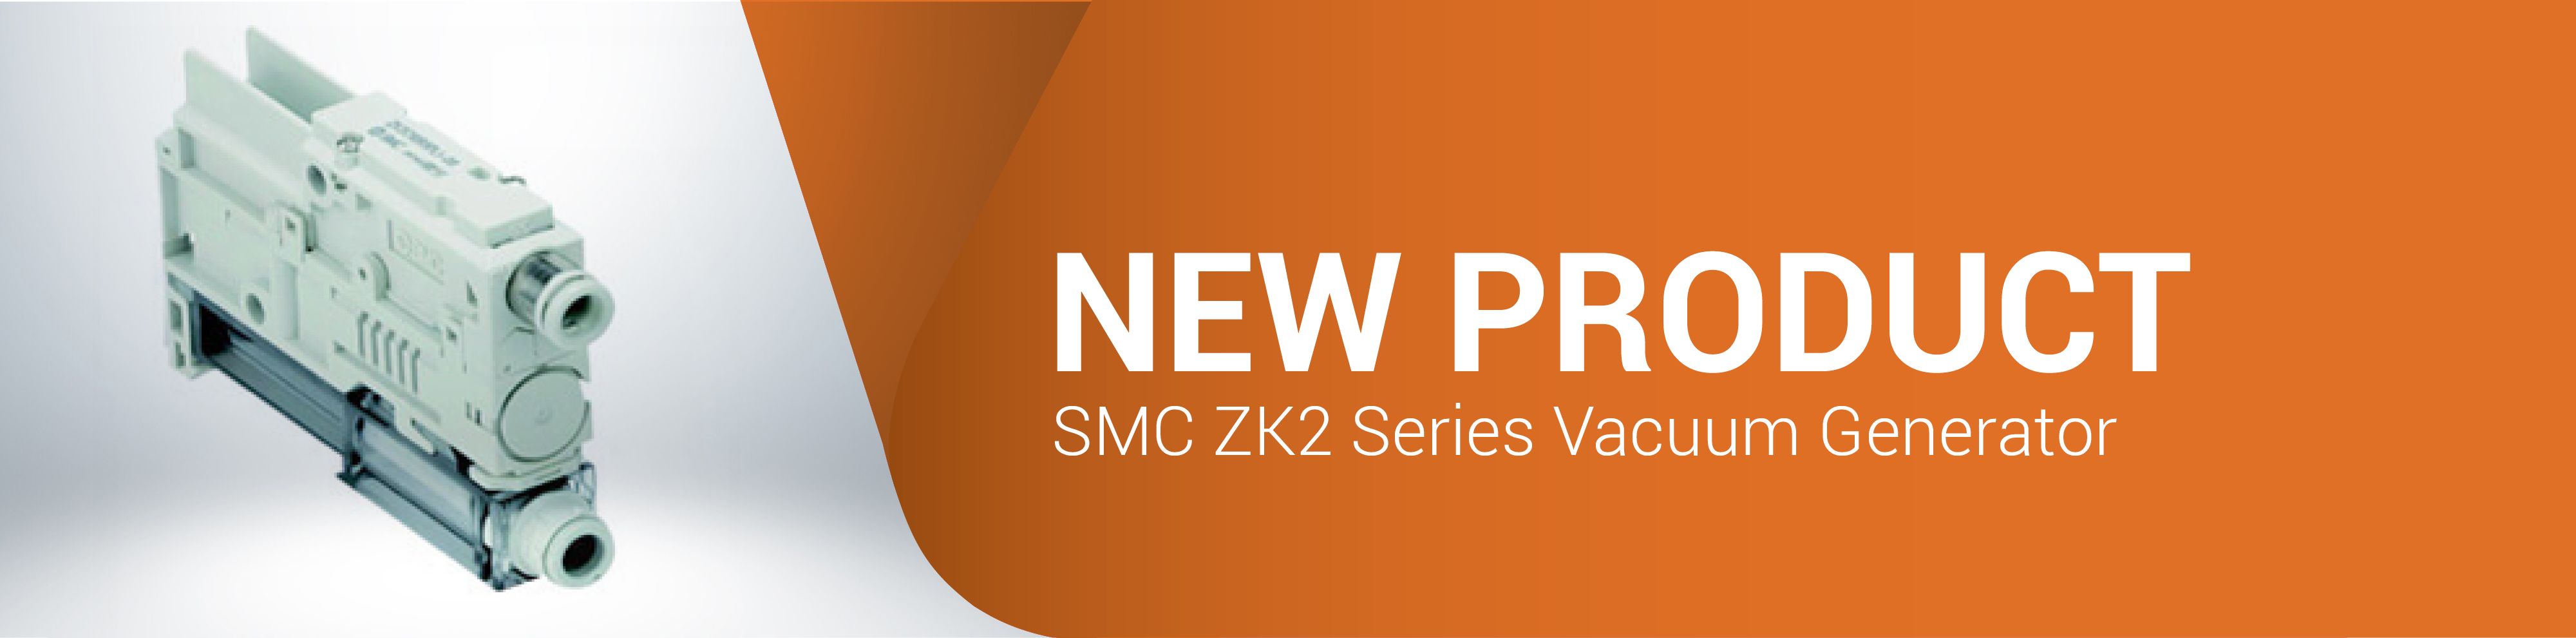 New Product  Smc Zk2 Series Vacuum Generator